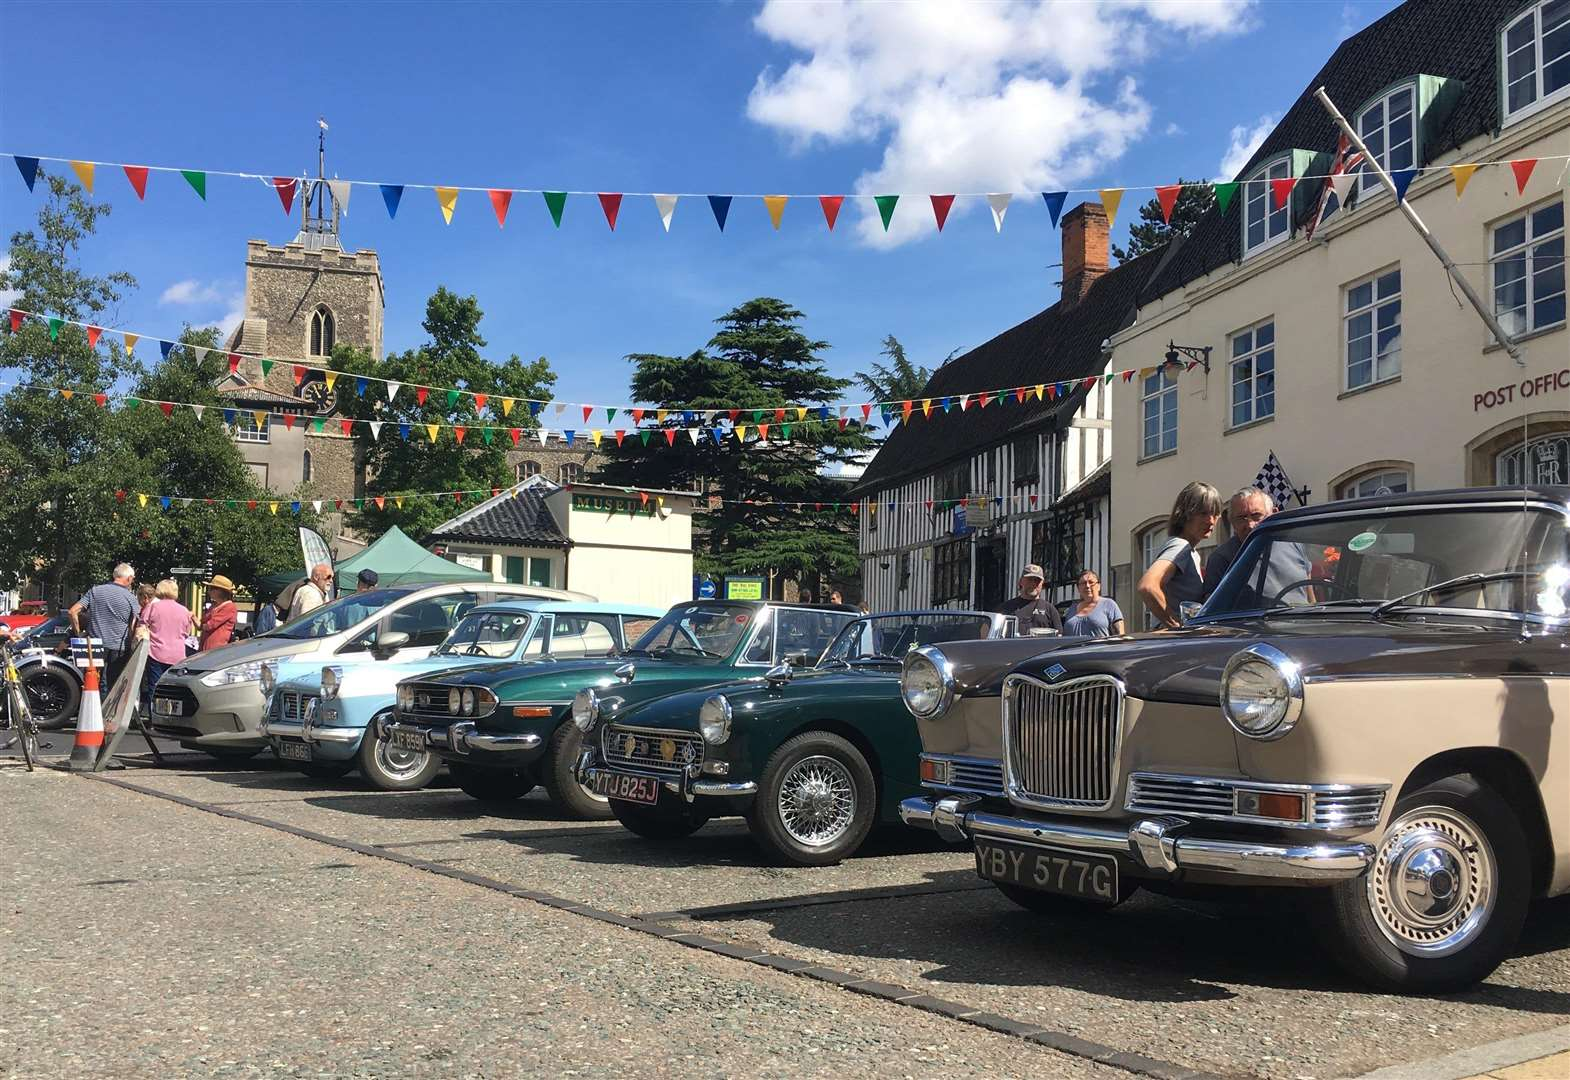 Heritage Transport Fayre rides into Diss this Sunday